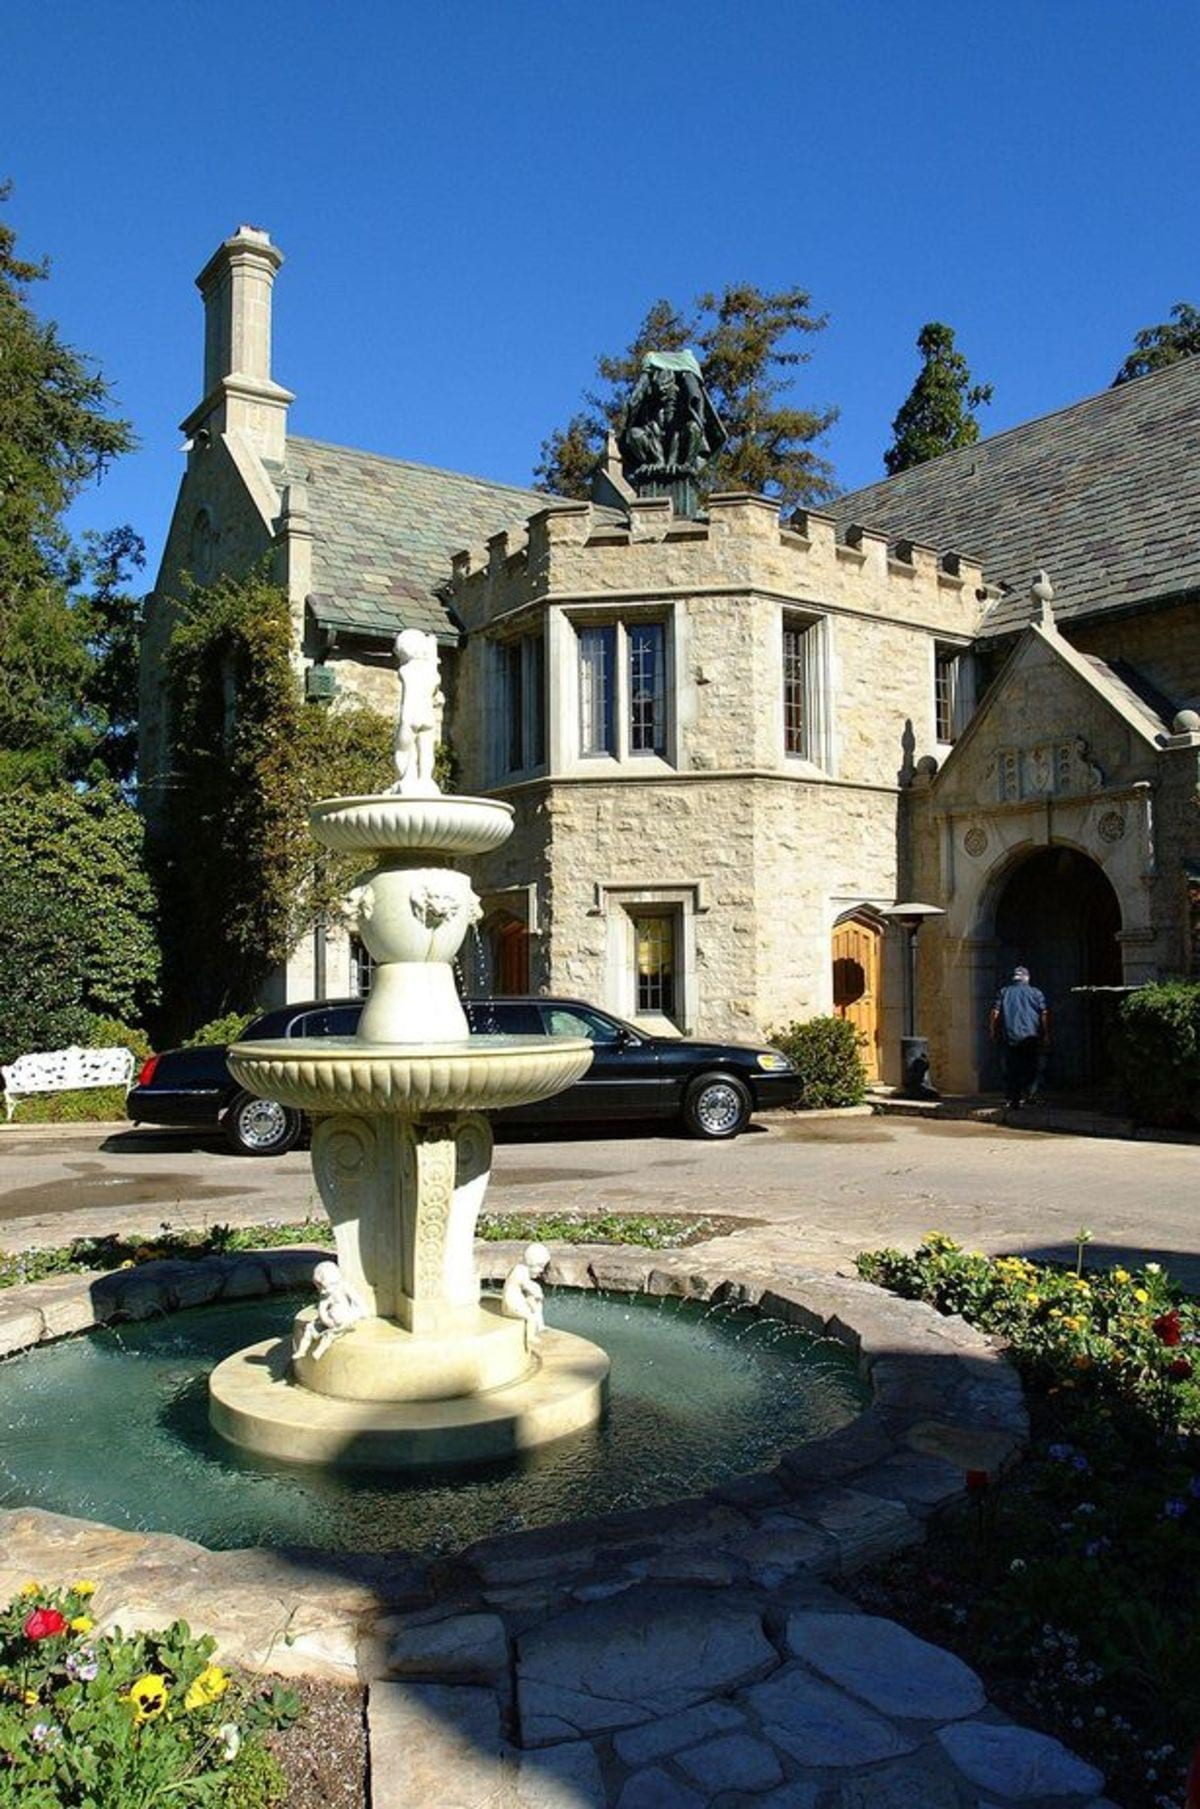 The-Playboy-mansion-is-up-for-sale-for-$200million (1)